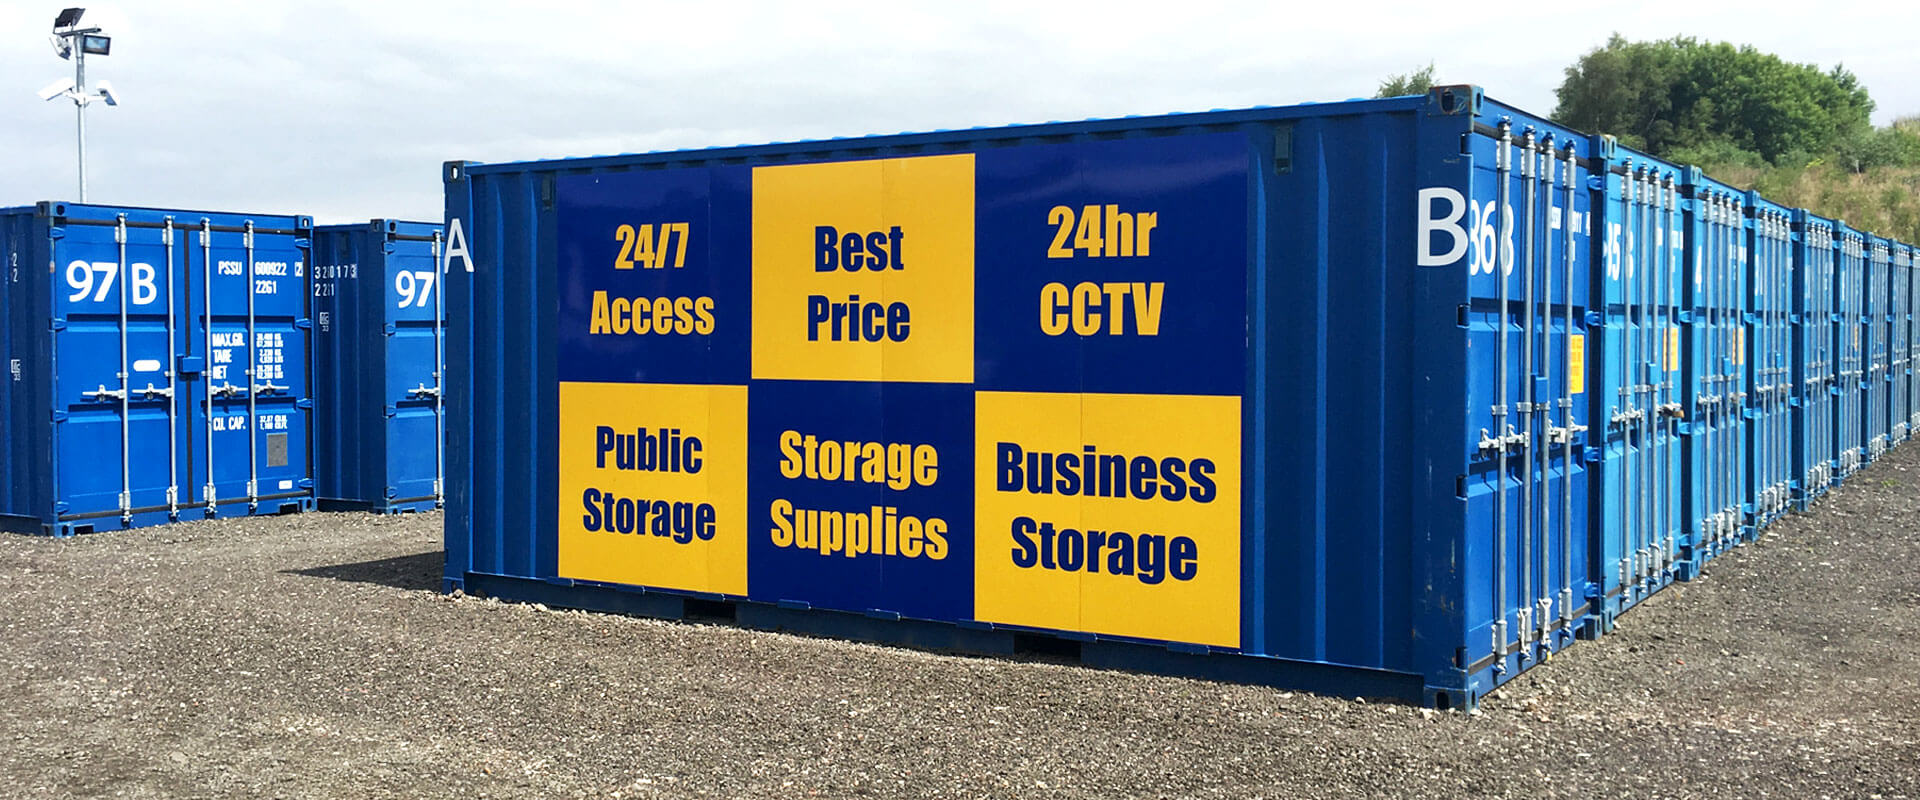 Storage Guidance Robinsons Self Storage Your guide to self storage